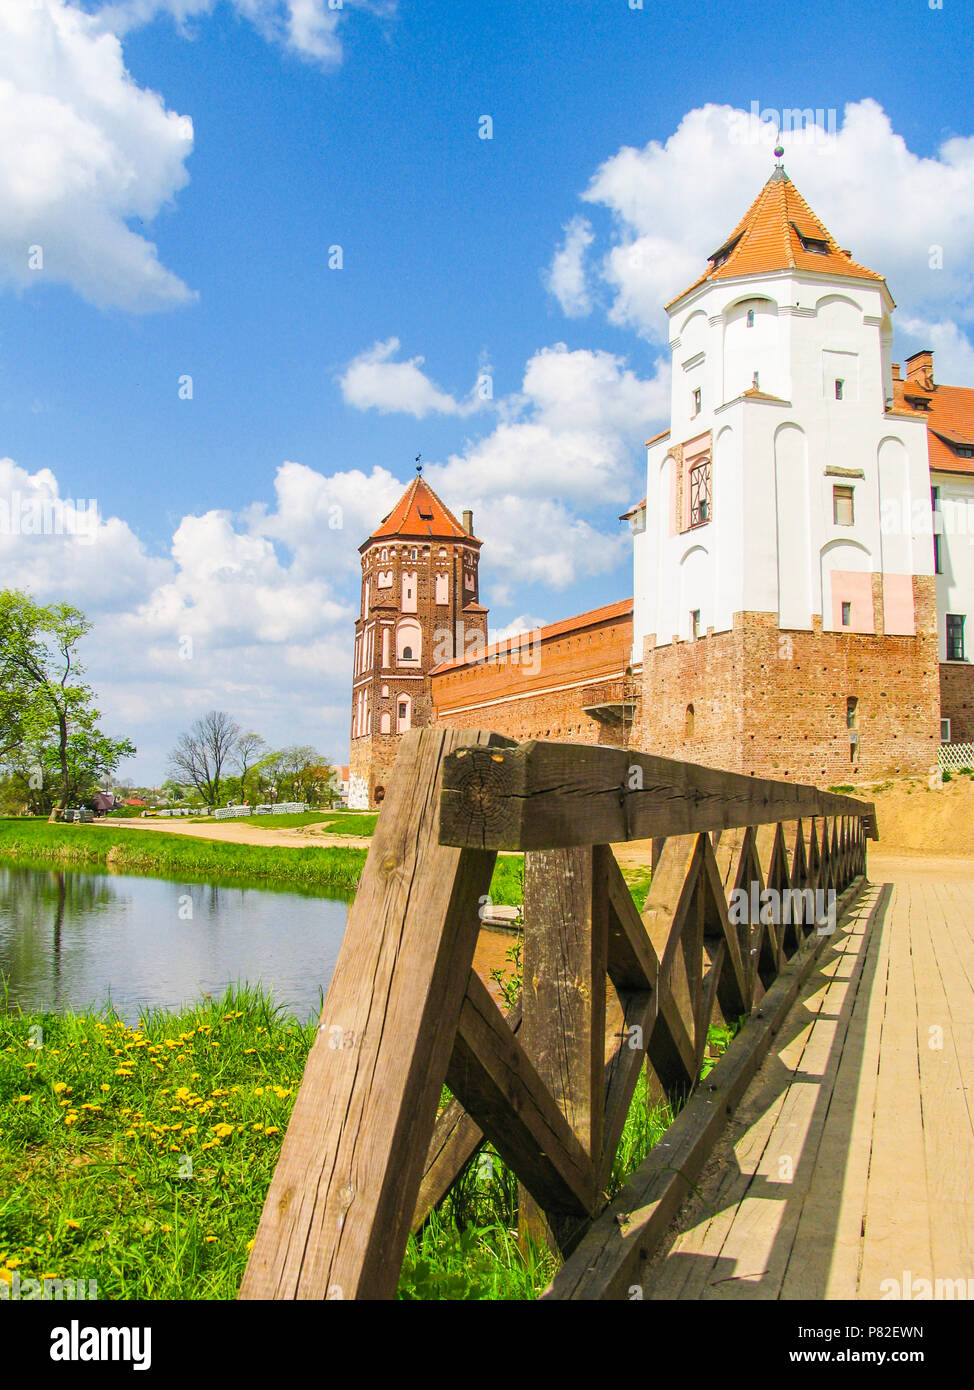 Mir, Belarus. Castle Complex Mir On Sunny Day with blue sky Background. Old medieval Towers and walls of traditional fort from unesco world heritage list - Stock Image